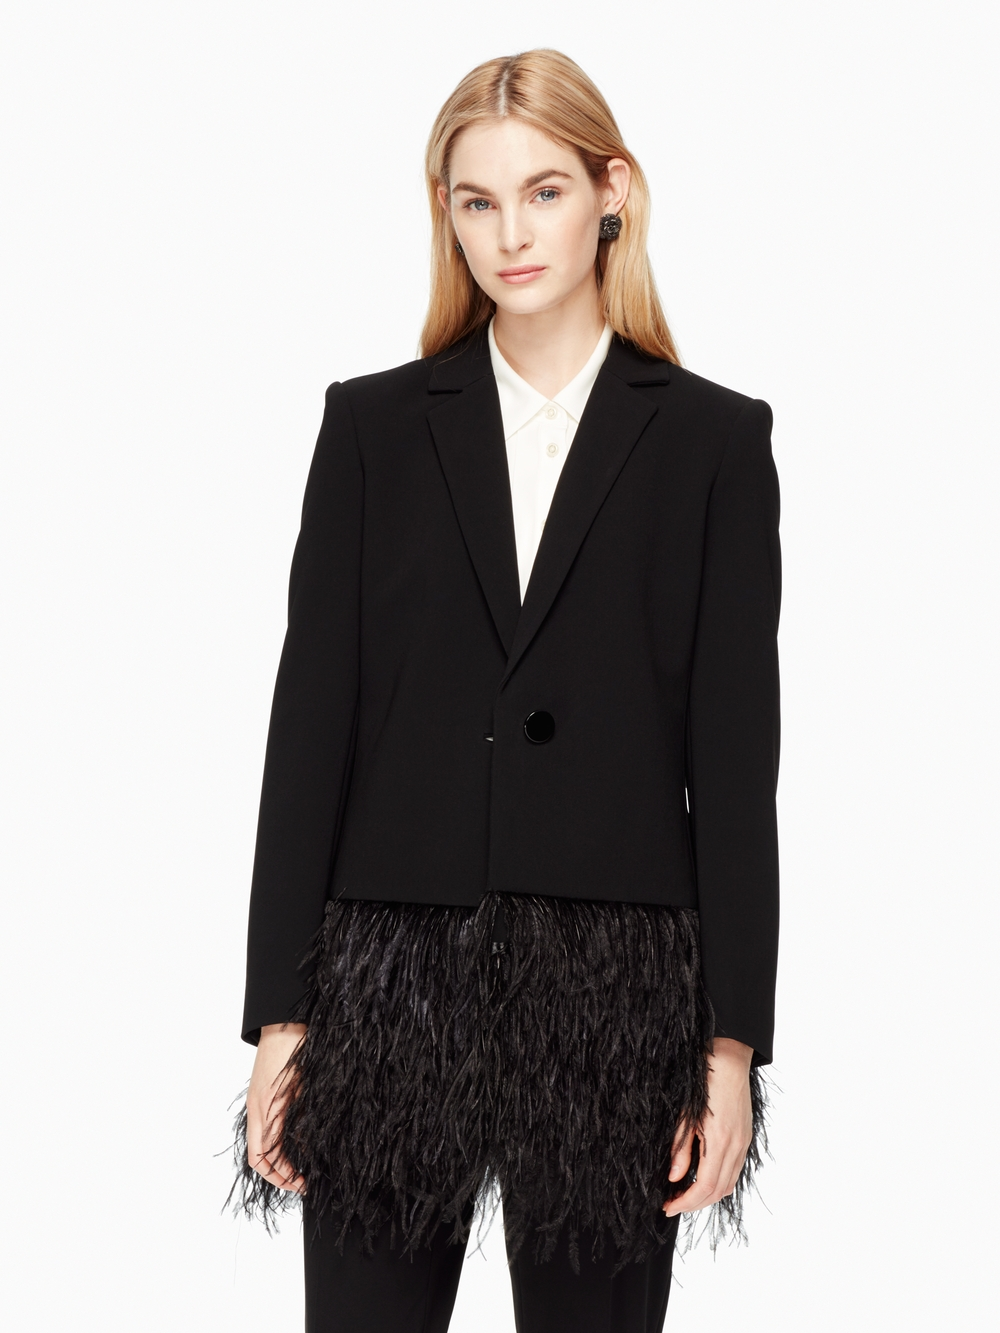 kate spade new yorkのMADISON AVE. COLLECTION VALERIE BLAZER